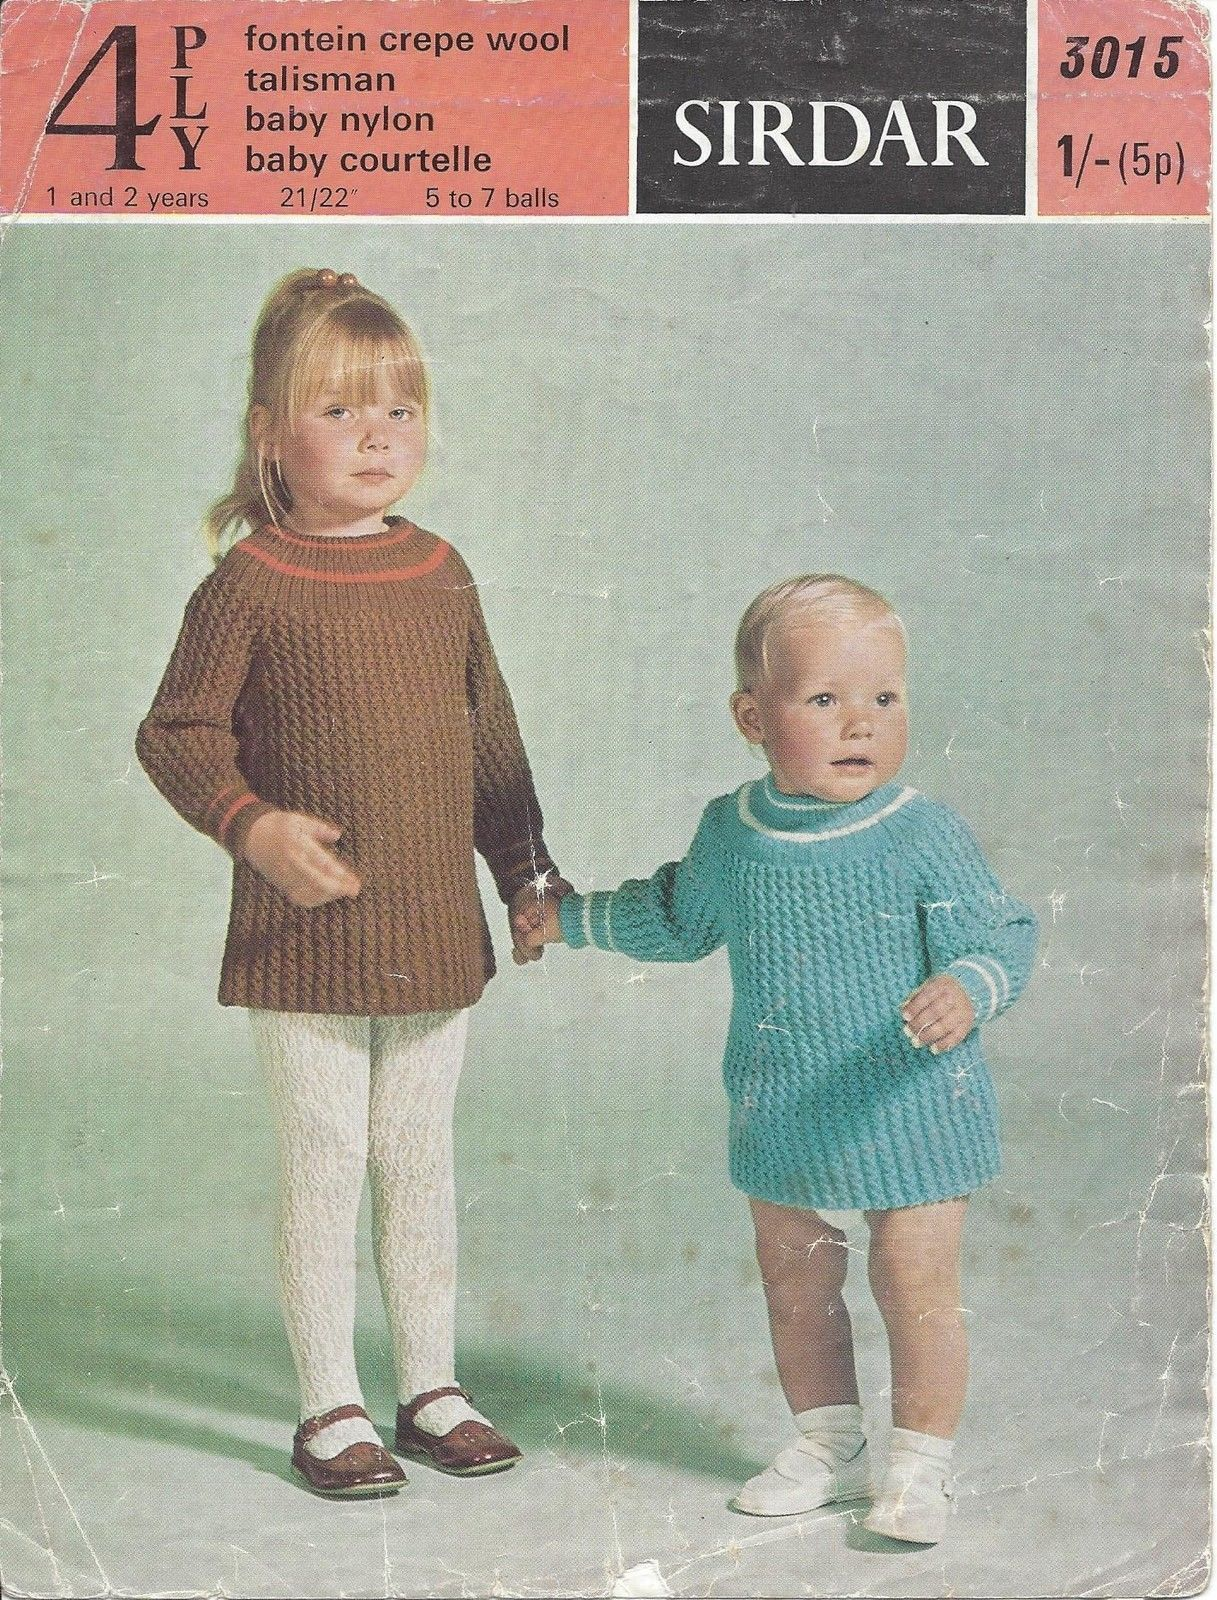 Details about vintage knitting pattern for babytoddler dress in 4 vintage knitting pattern for babytoddler dress in 4 ply ebay bankloansurffo Image collections